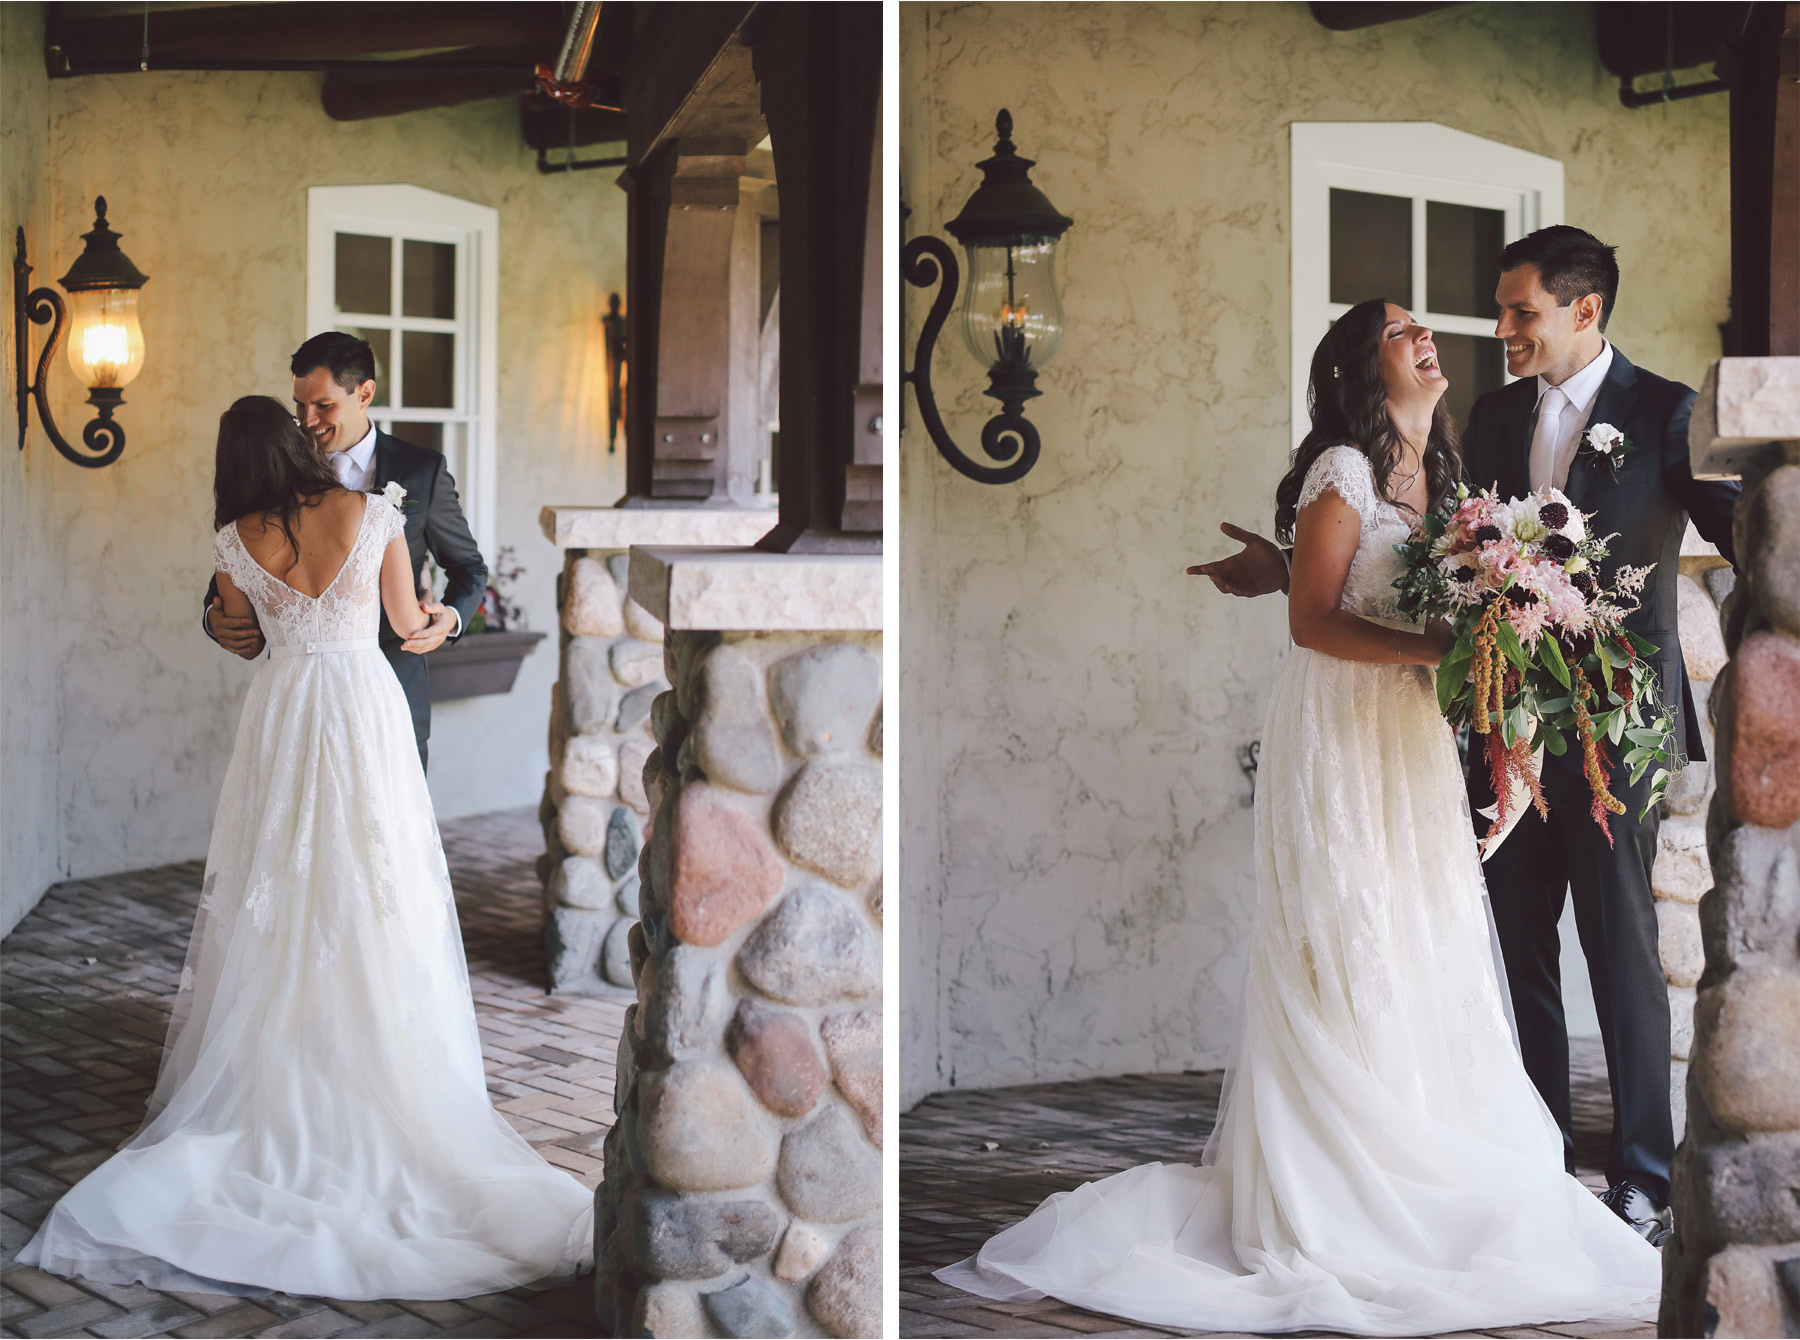 05-Weding-by-Vick-Photography-Minneapolis-Minnesota-Bavaria-Downs-Bride-Groom-First-Look-Cottage-Rebecca-and-Mark.jpg